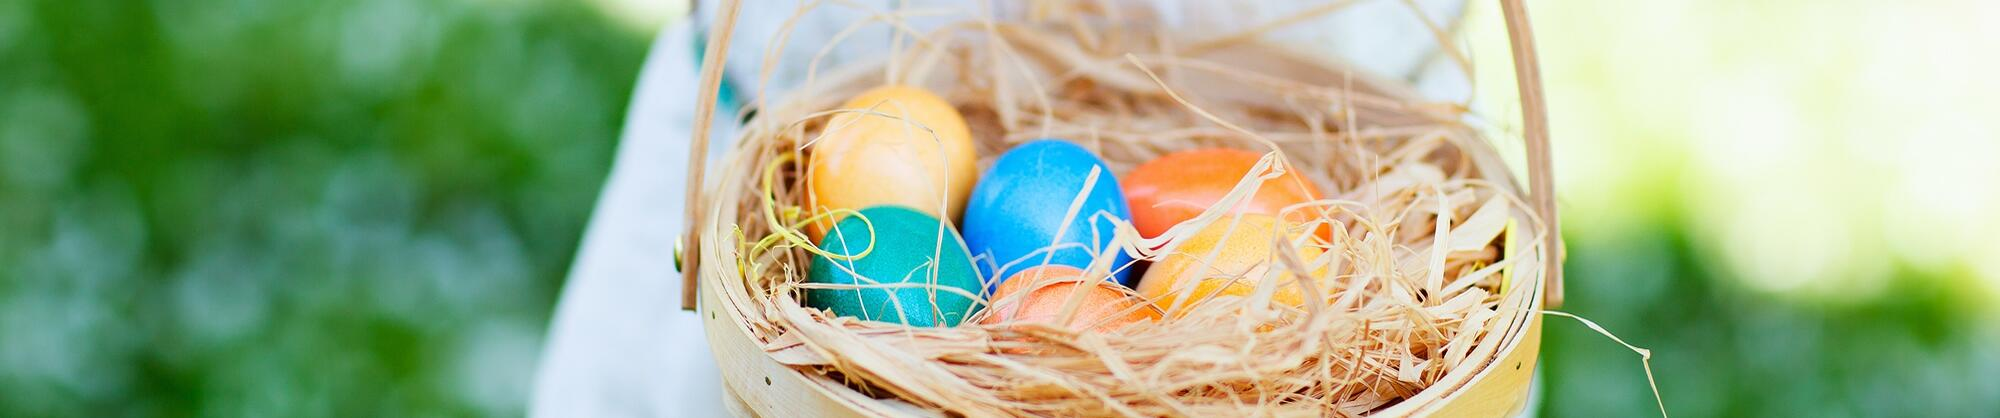 Easter offer: 4 nights for the price of 3 in a hotel in Rimini with children's discounts and park